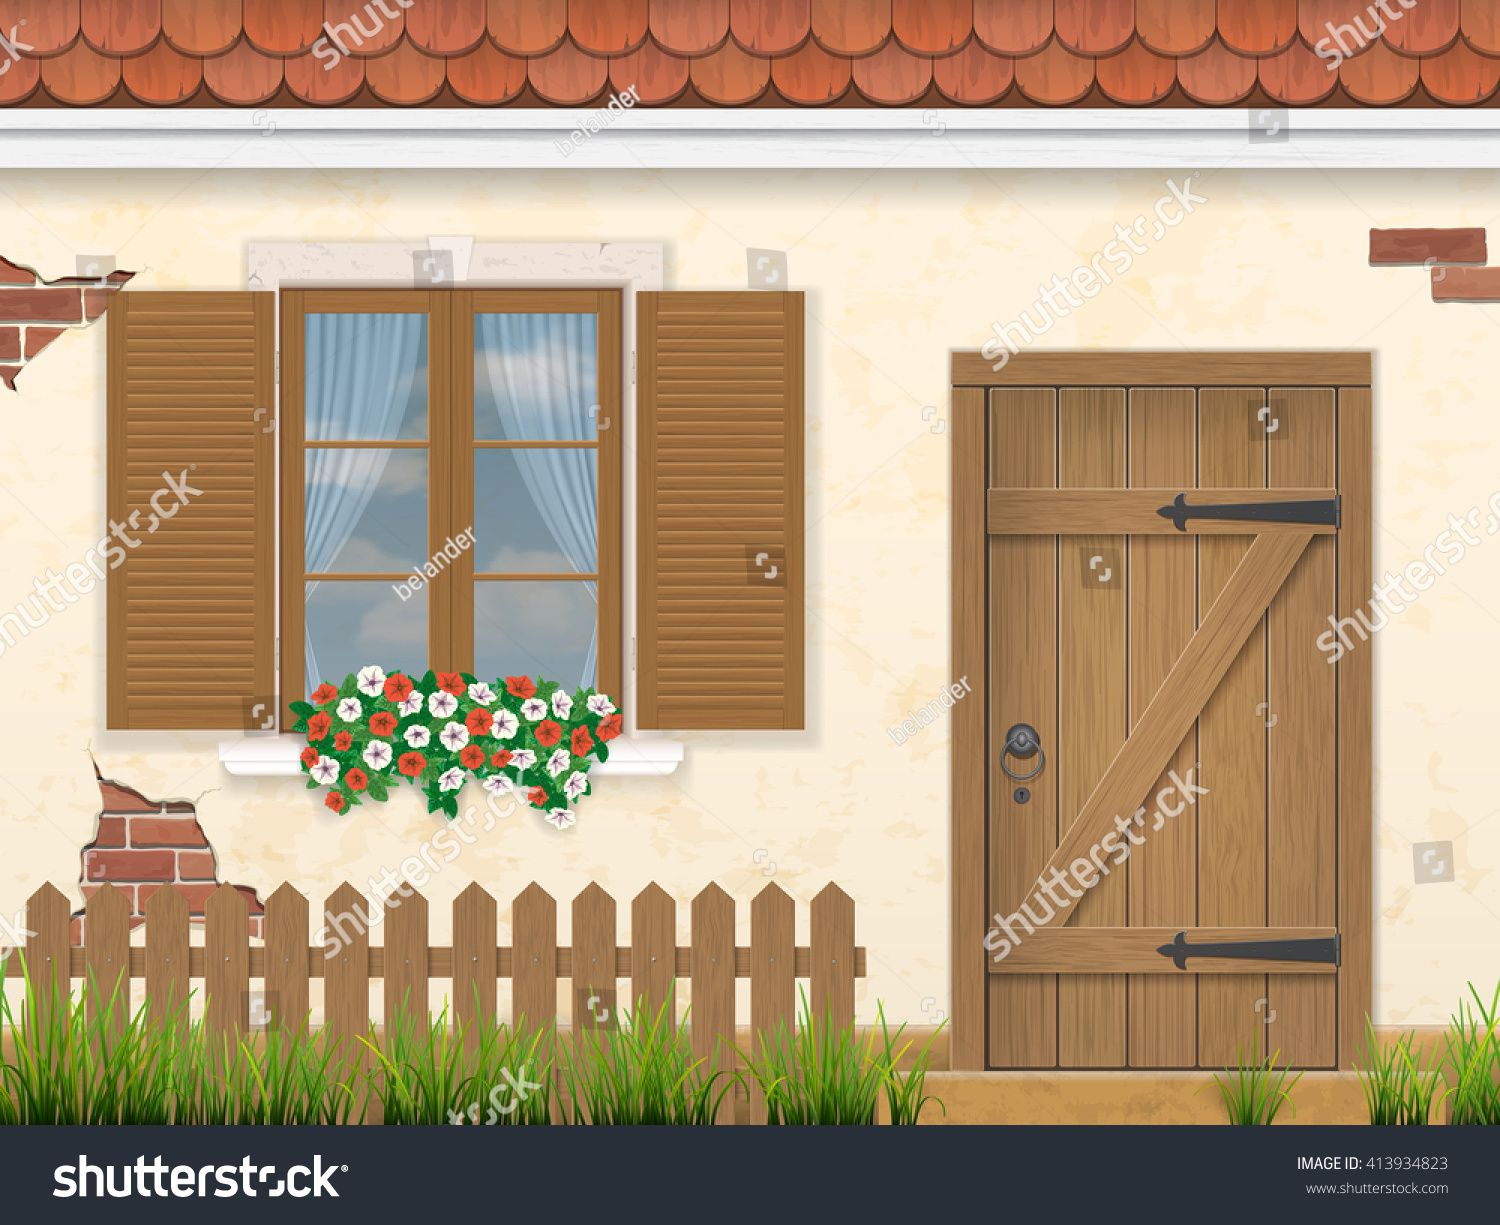 wooden window door and fence with grass in